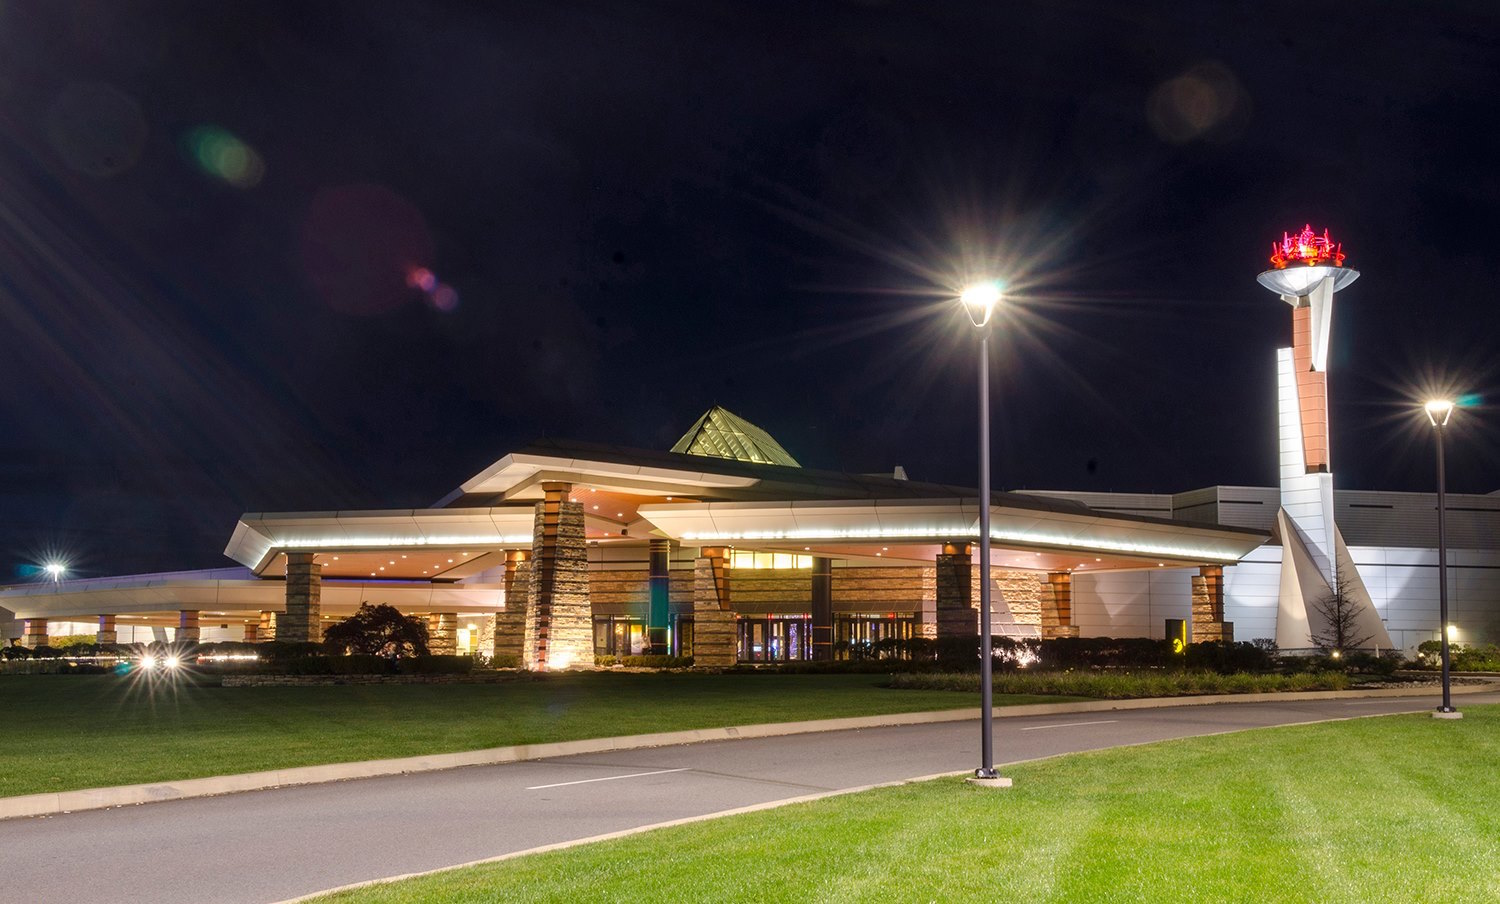 Mohegan Tribe fires employees accused of major theft at casino